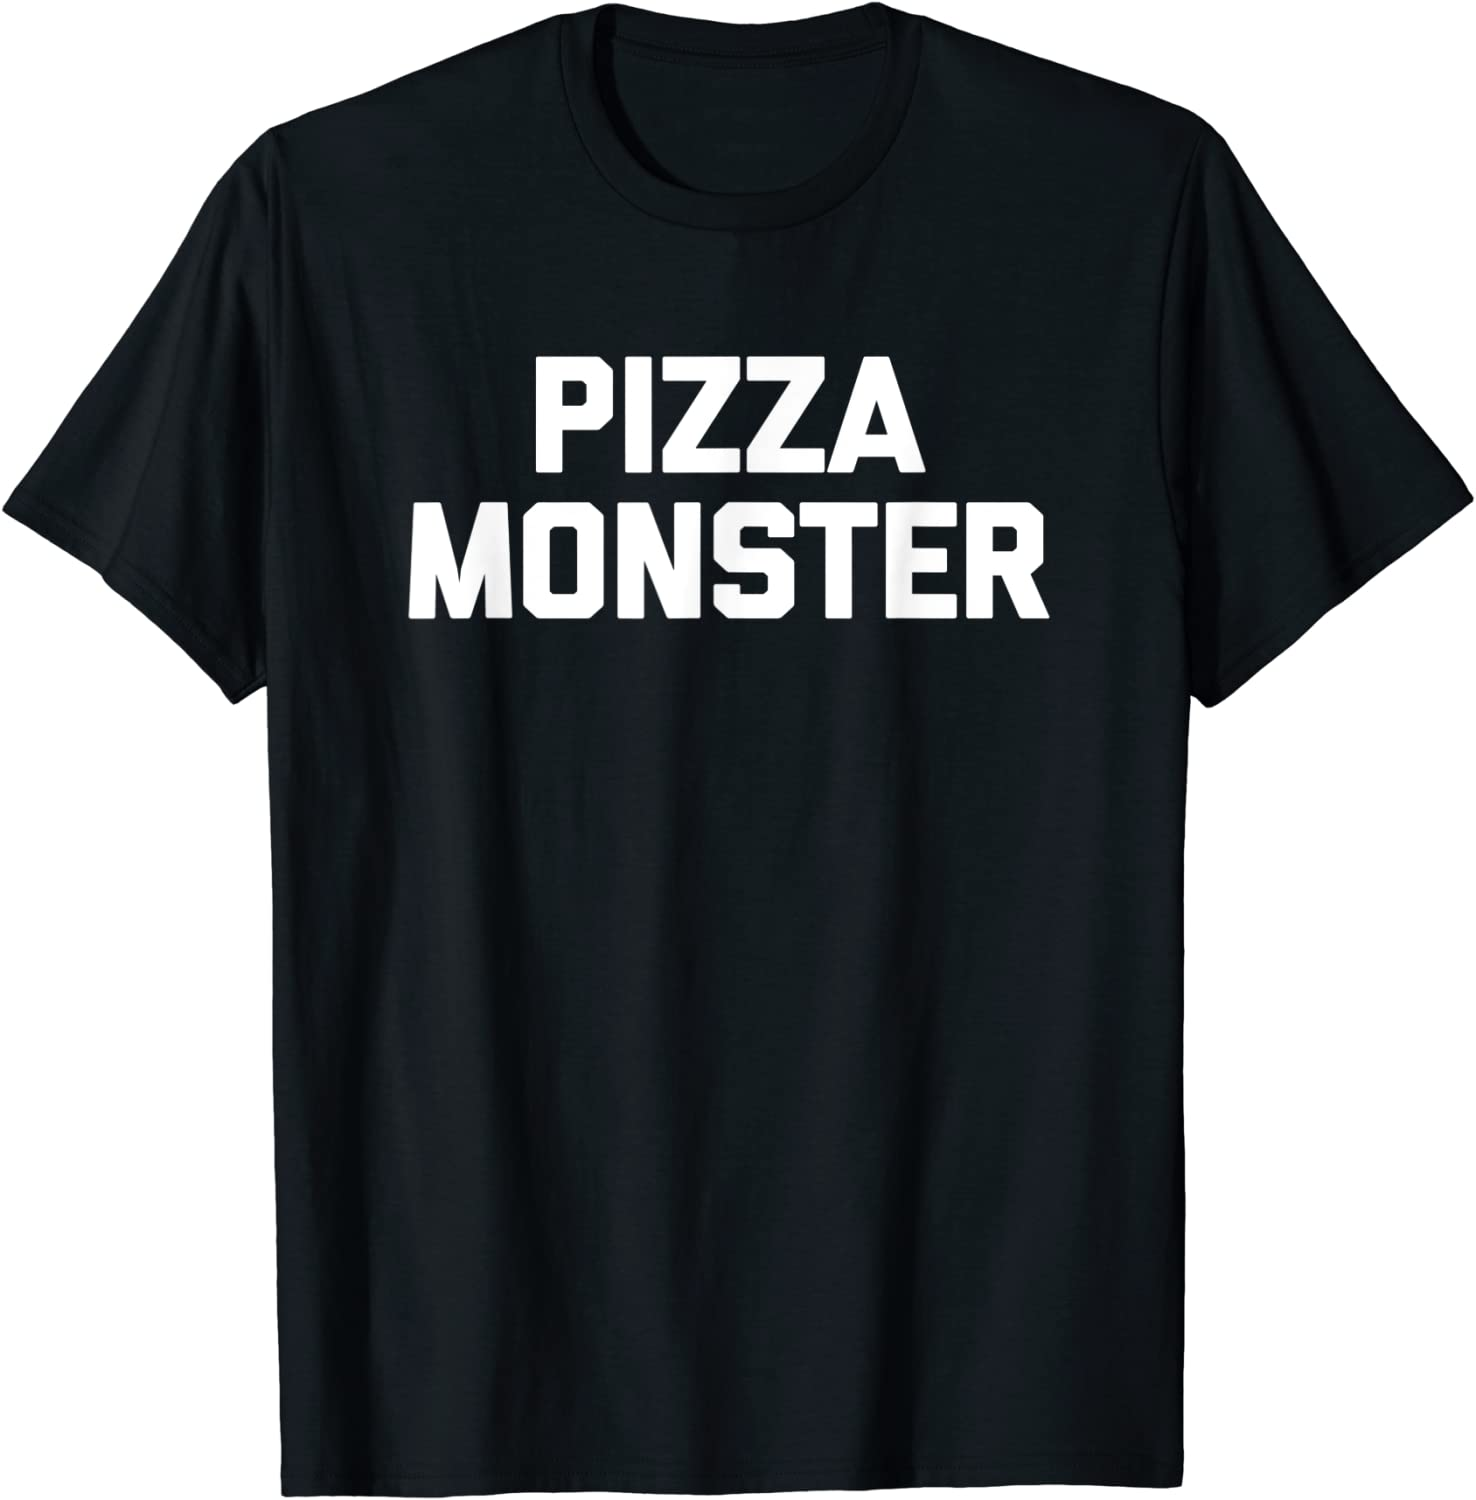 Pizza Monster T-Shirt funny saying sarcastic cool food Pizza T-Shirt